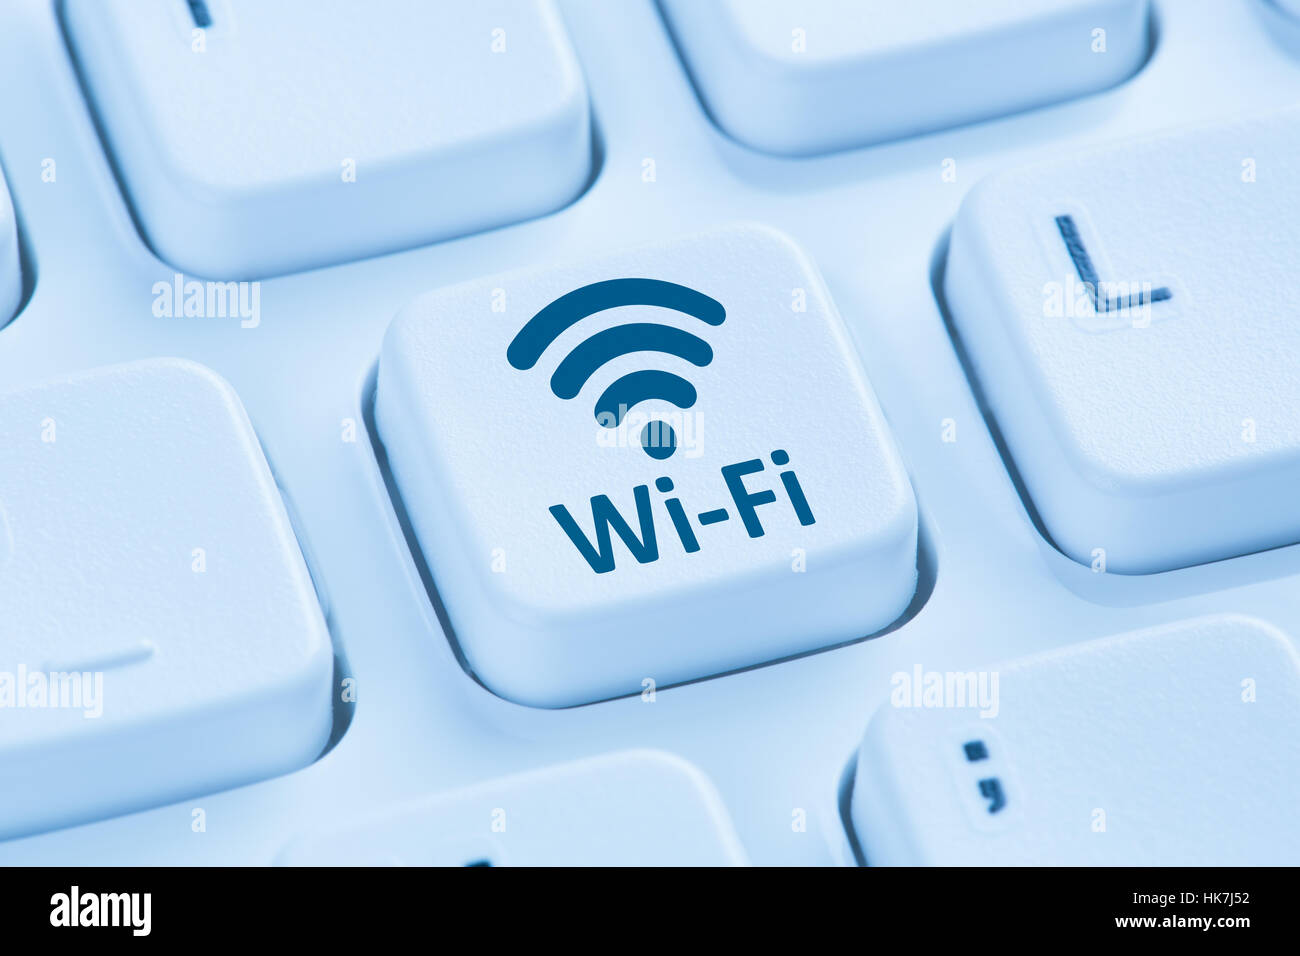 Wifi hotspot wifi internet connection bleu symbole clavier de l'ordinateur Photo Stock